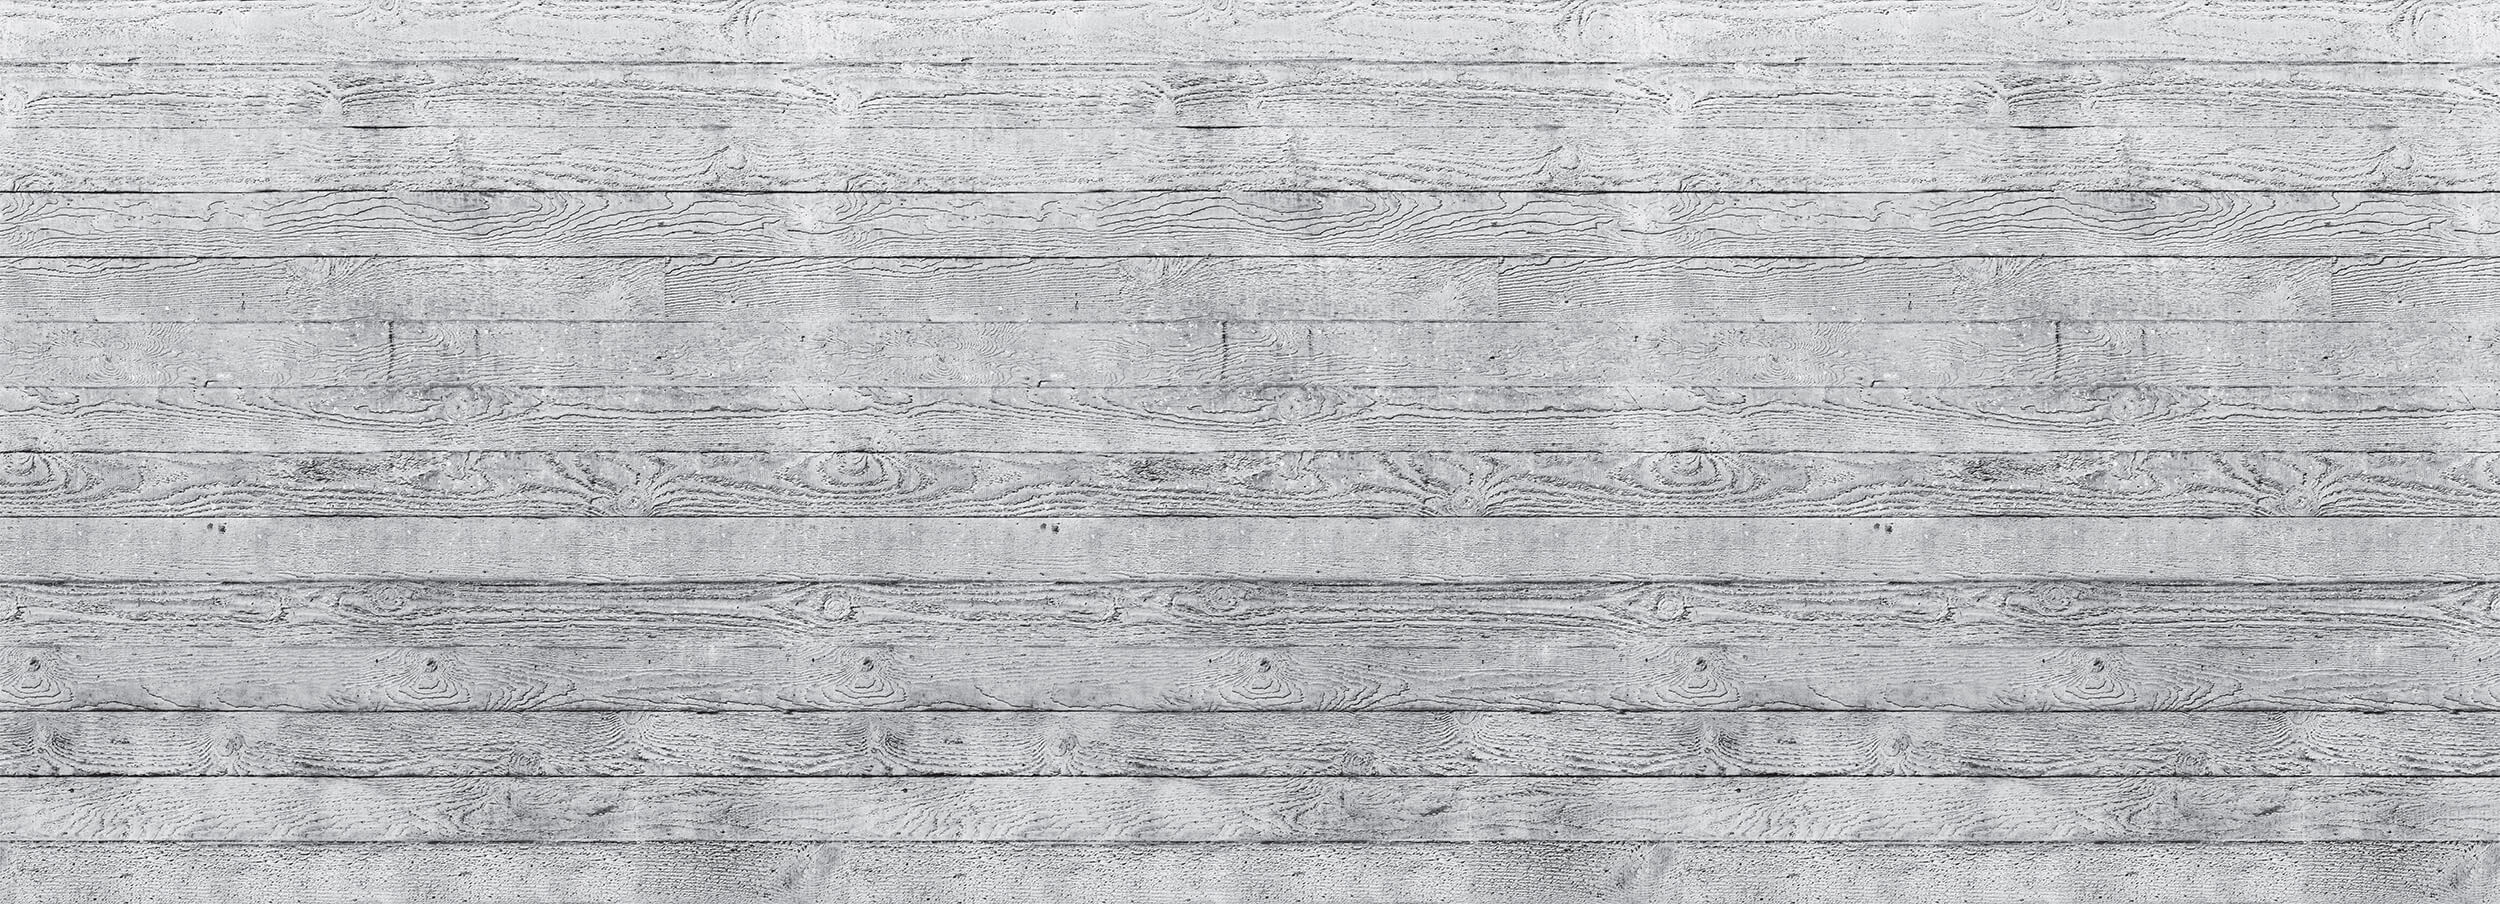 Concrete Wood Dove Grey